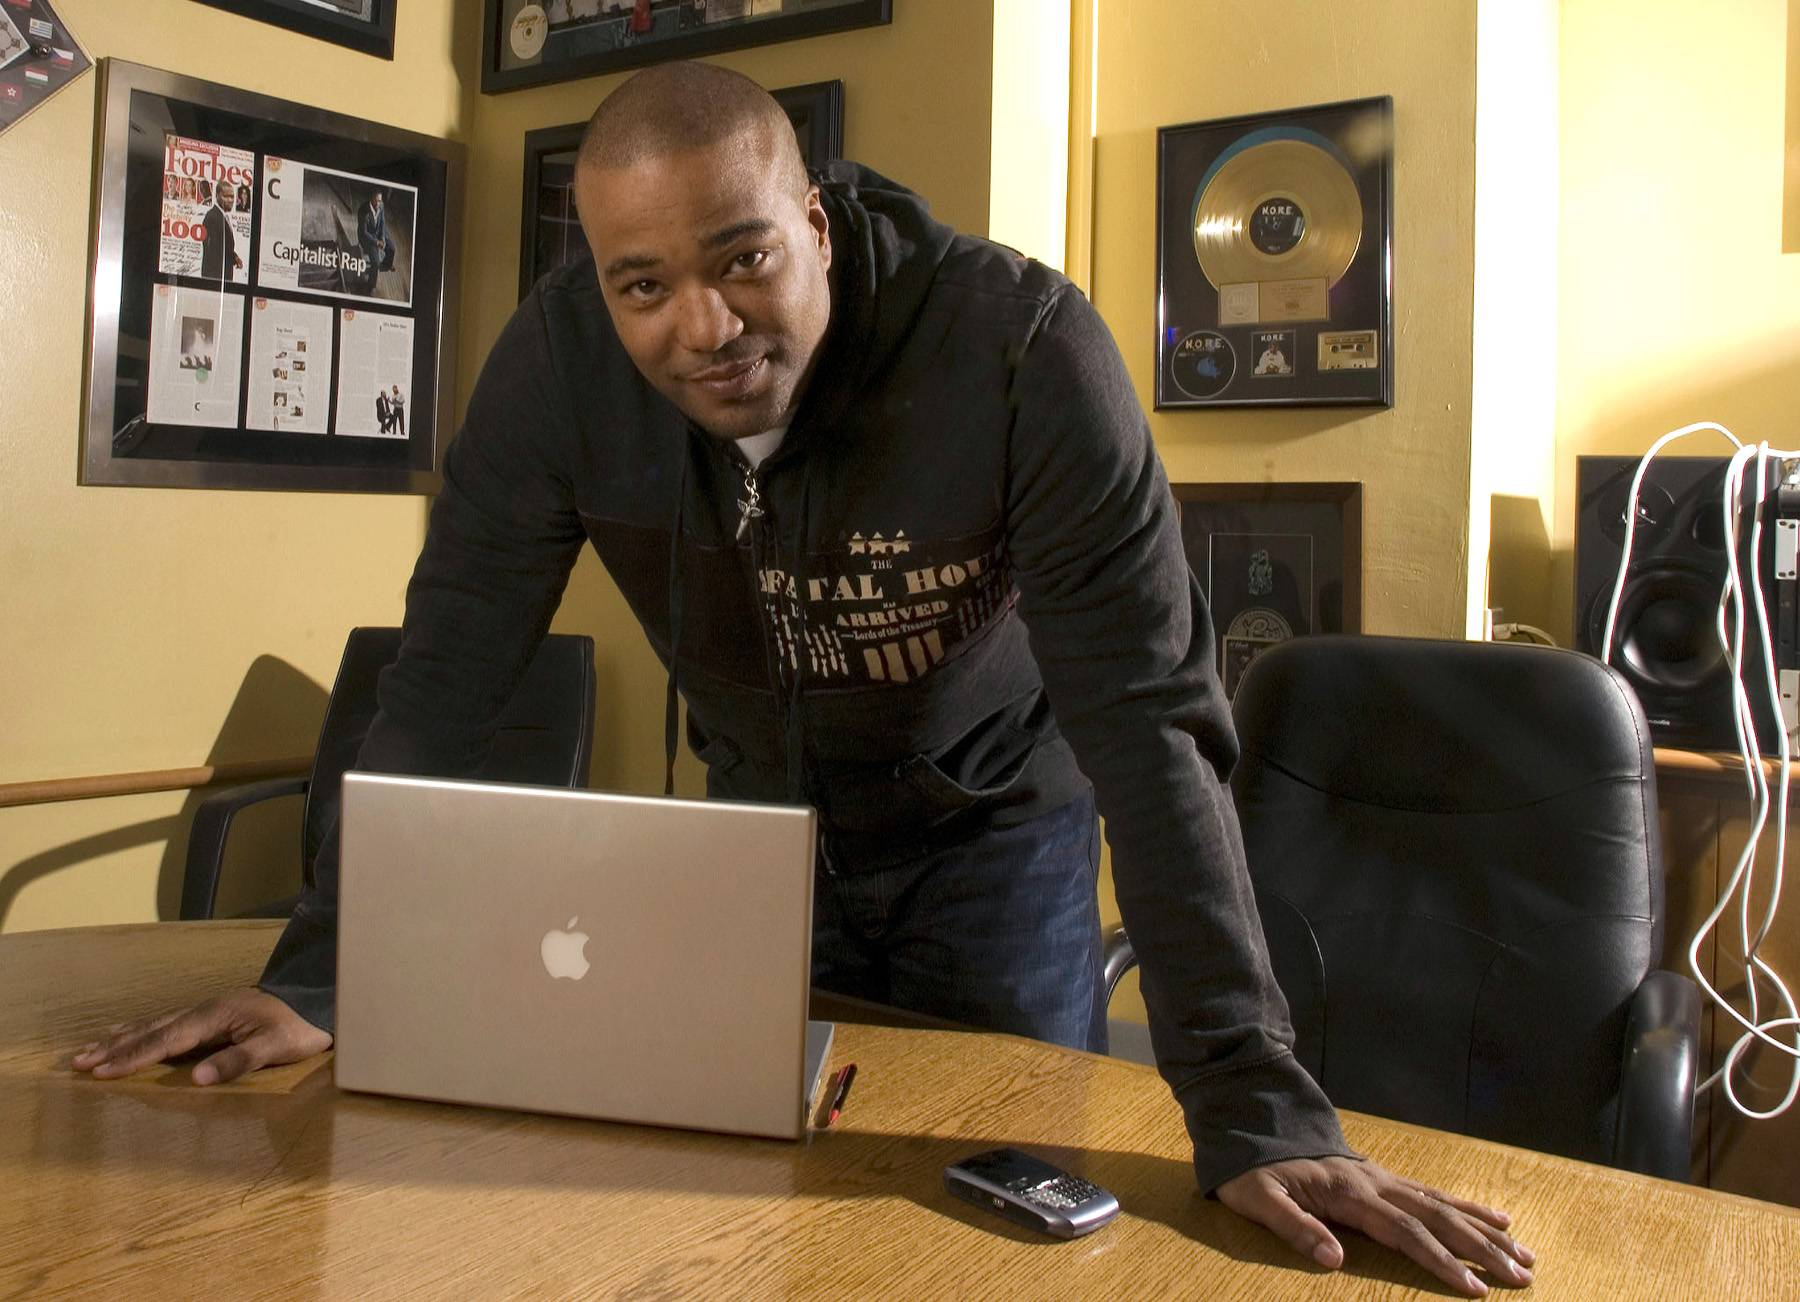 Chris Lighty - Chris Lighty, the music executive who helmed the careers of A Tribe Called Quest, Mariah Carey and 50 Cent, among others, was found dead in his New York City apartment from an alleged self-inflected gunshot wound on Aug. 30. He was 44.(Photo: AP Photo/Jim Cooper, file)